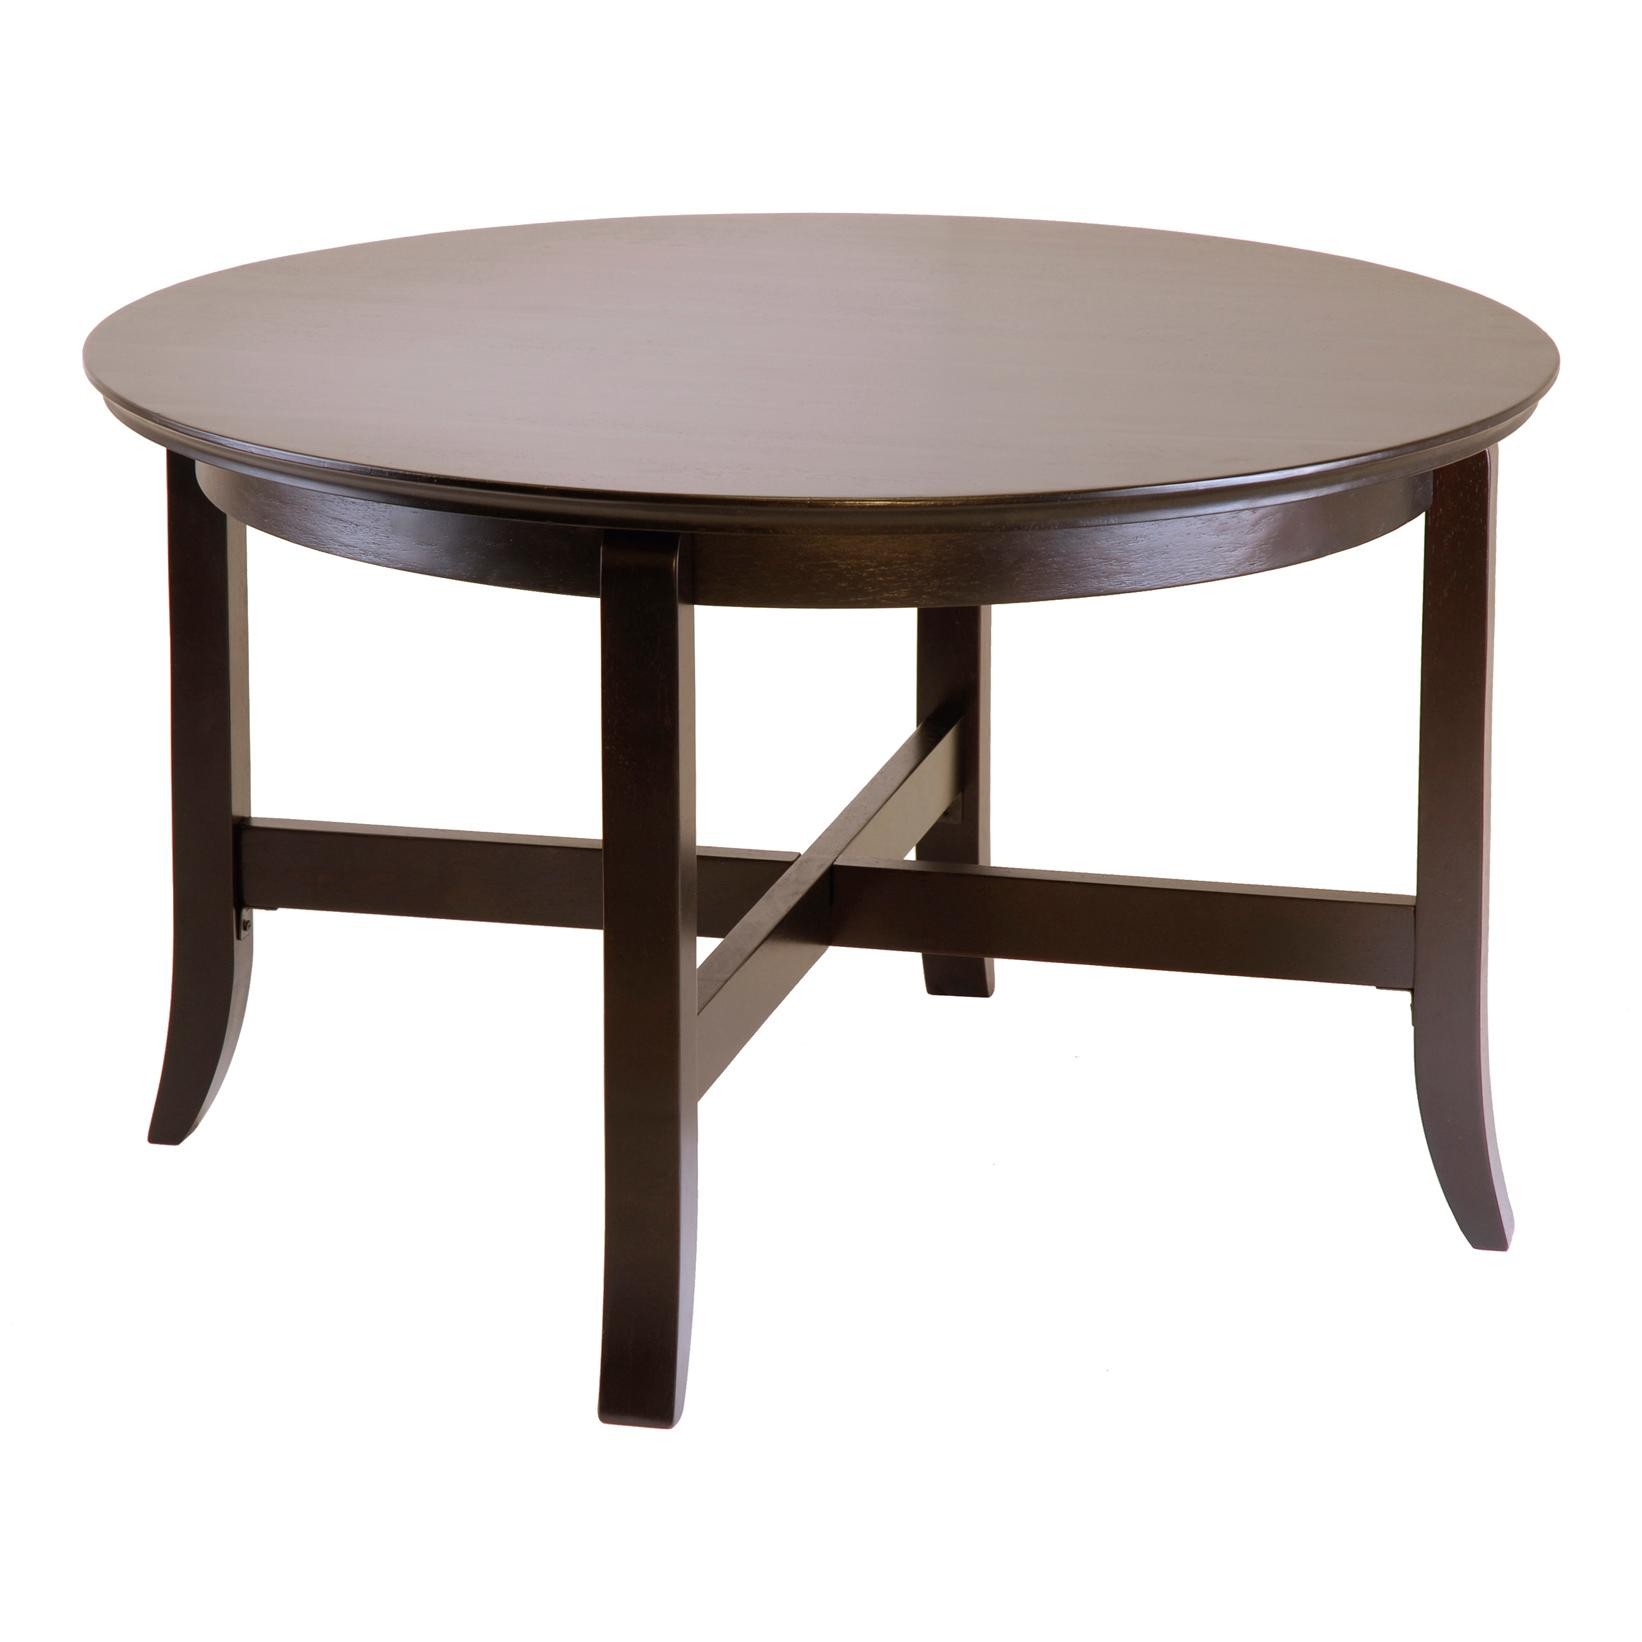 30 Inch Round Decorator Table Wood Composite